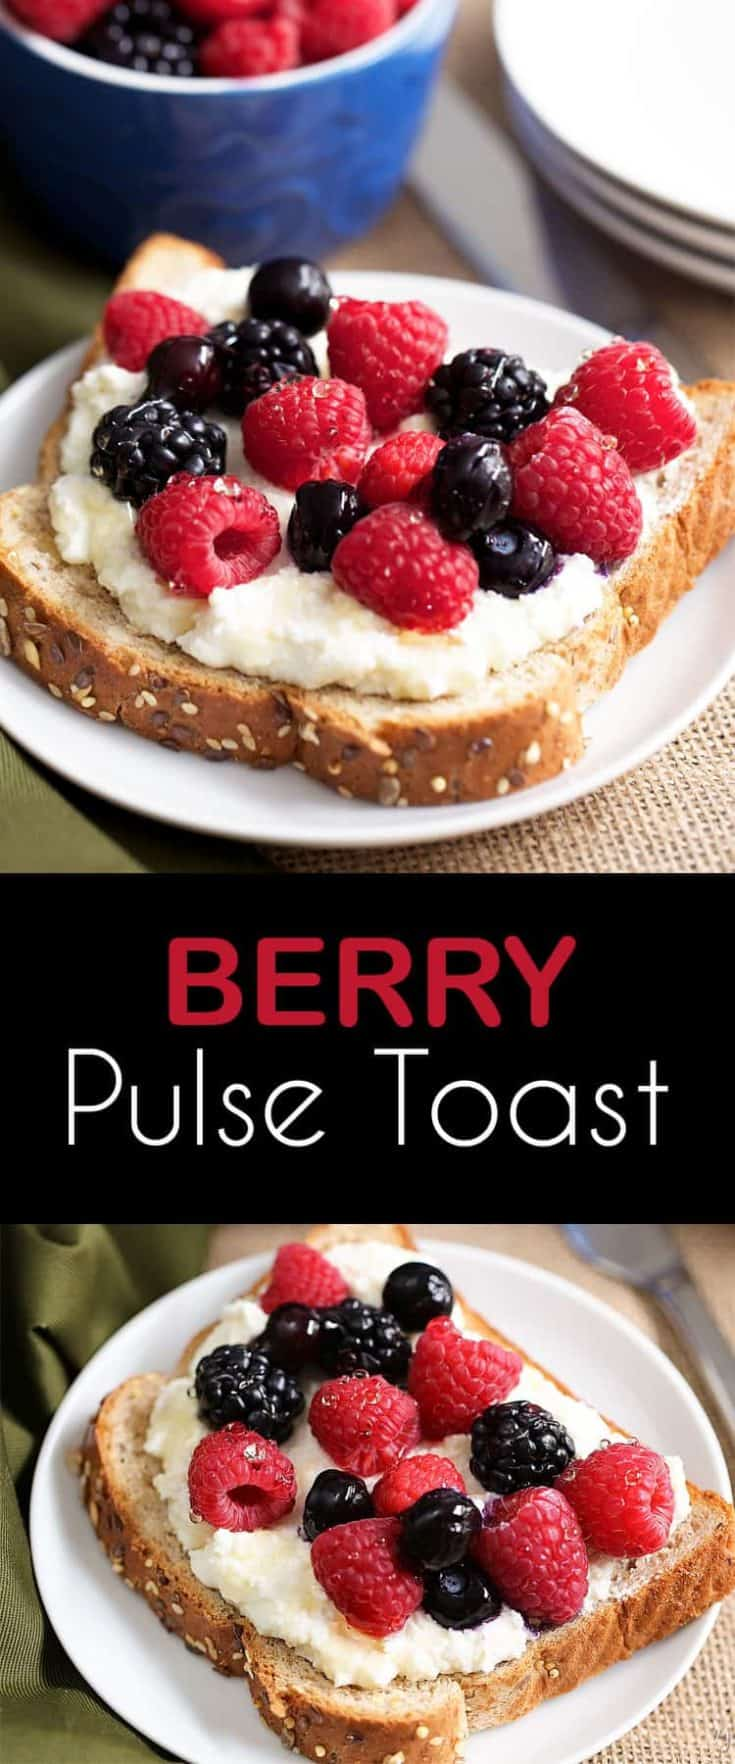 This Sunrise Power Berry Pulse Toast recipe is toast with a ricotta honey spread, and fresh berries - amazing! #breakfastrecipe #toast